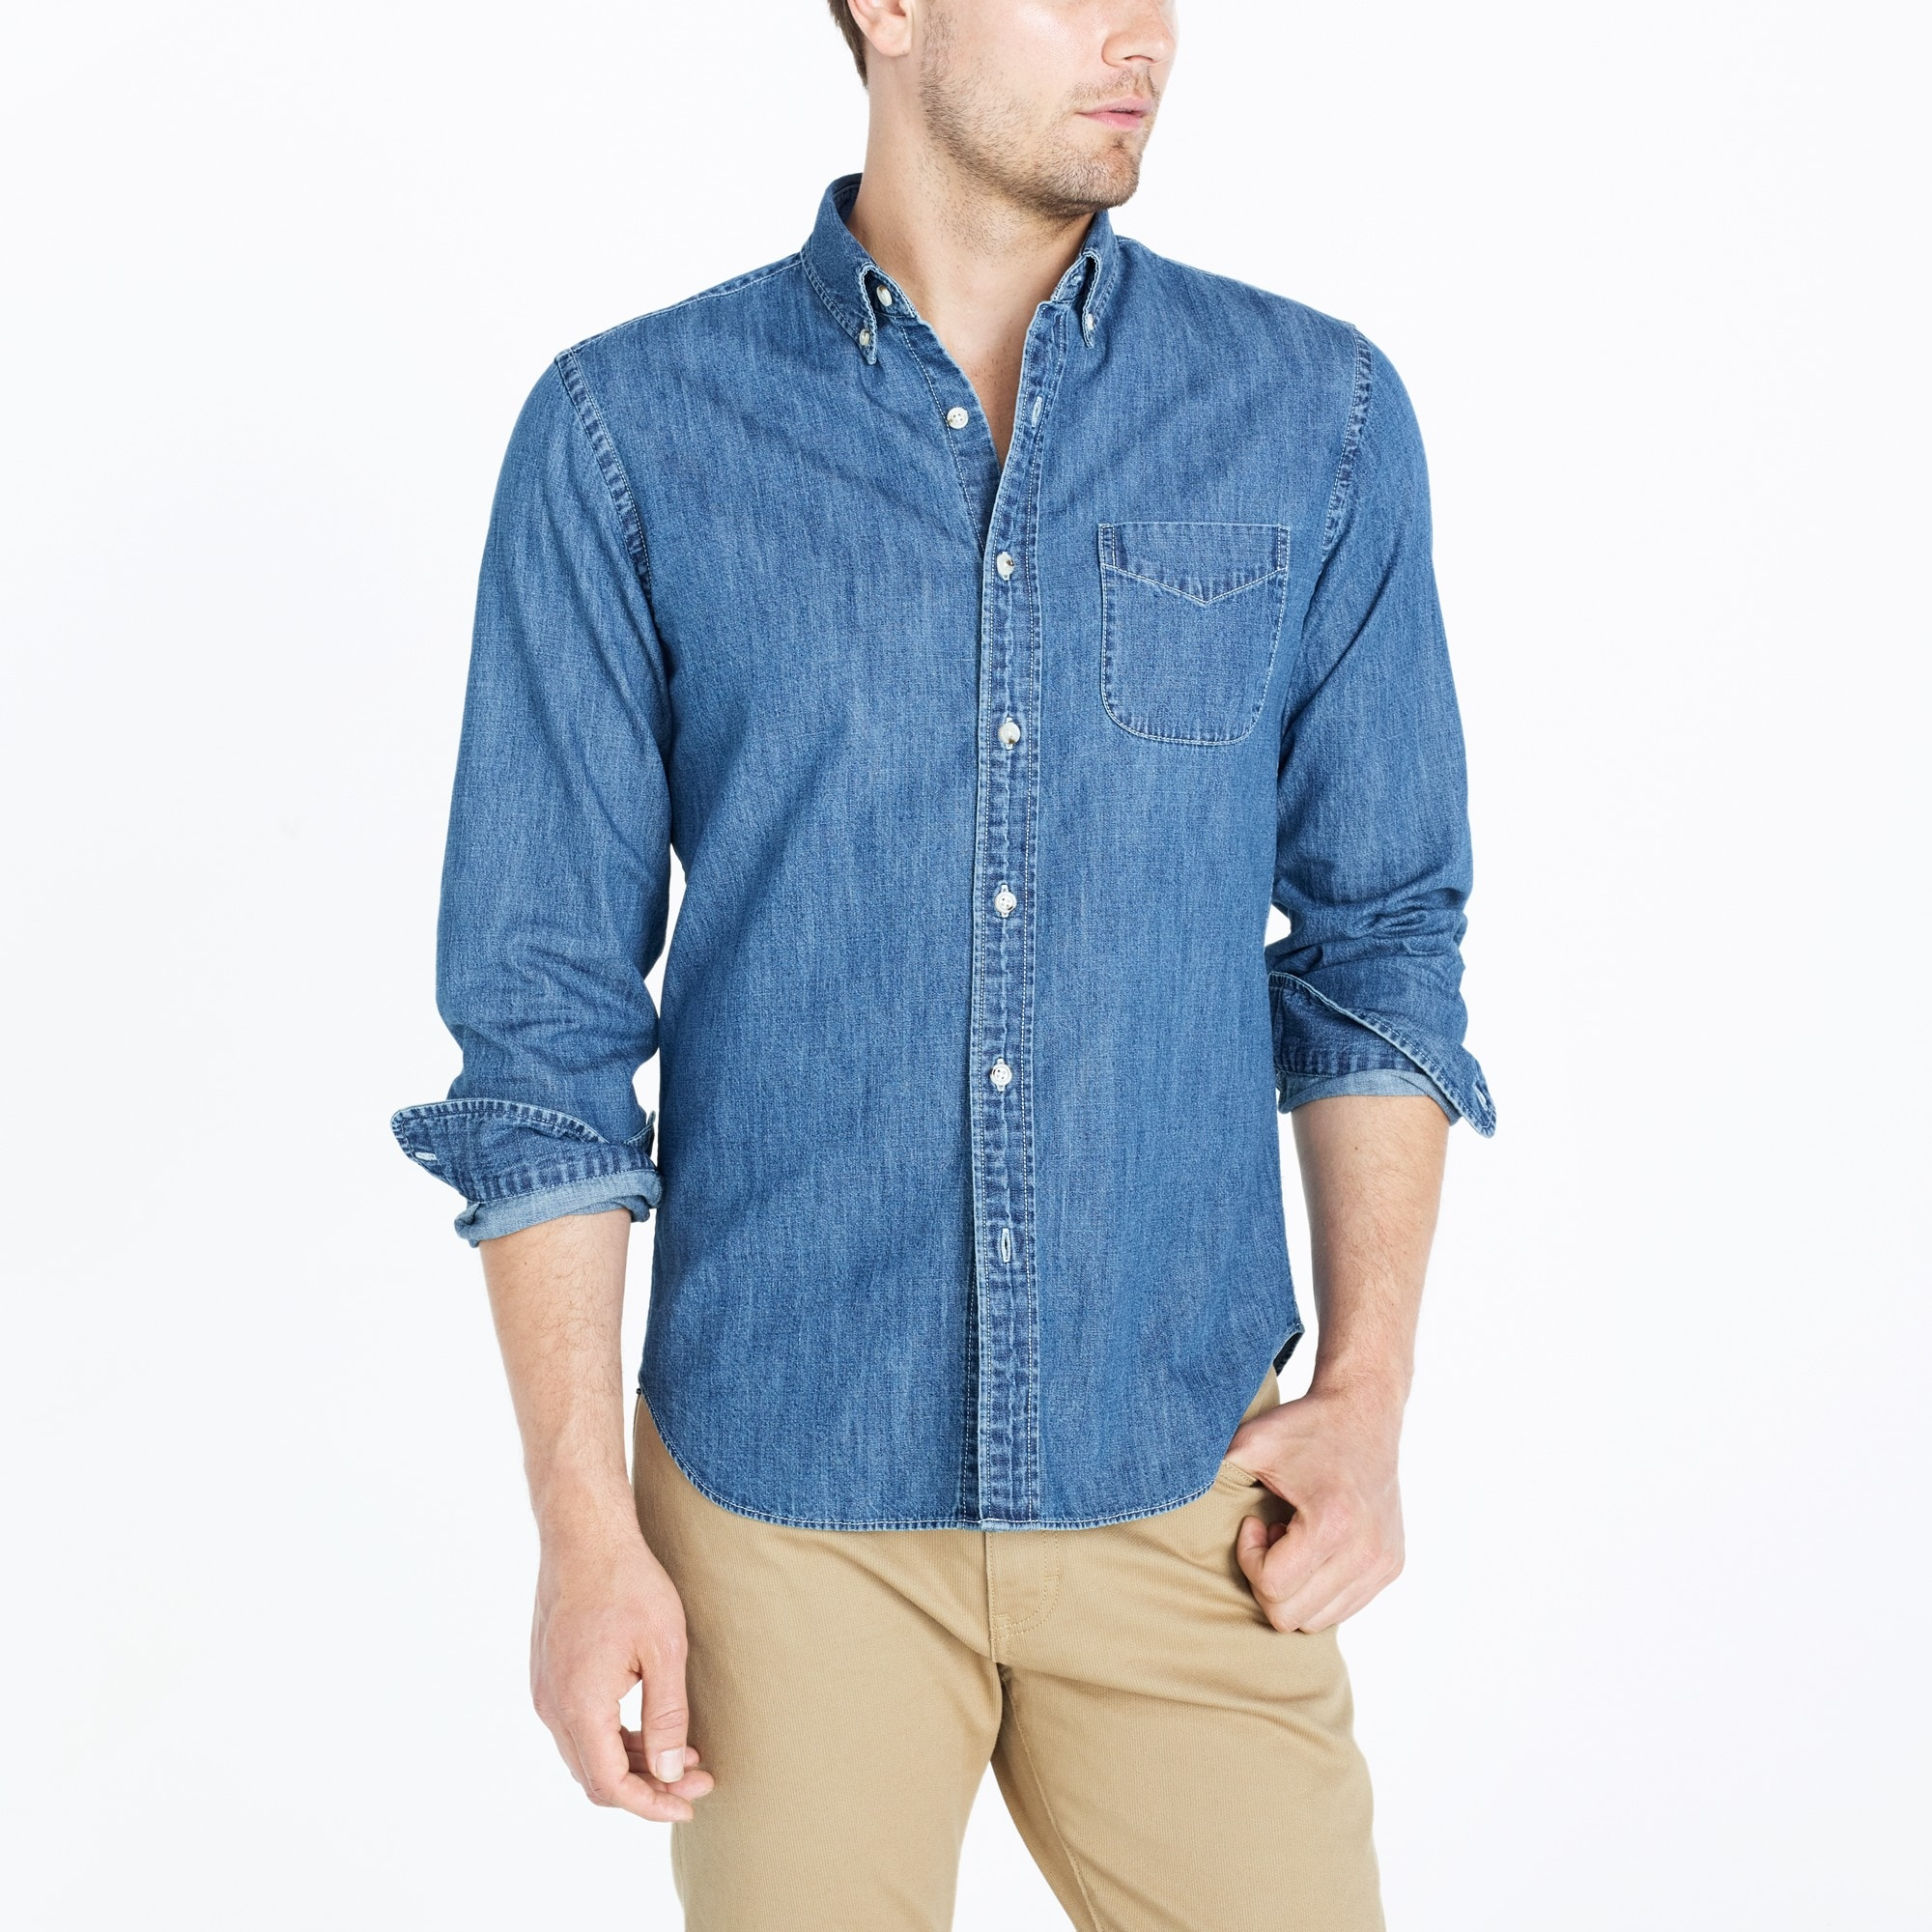 Lightweight denim workshirt